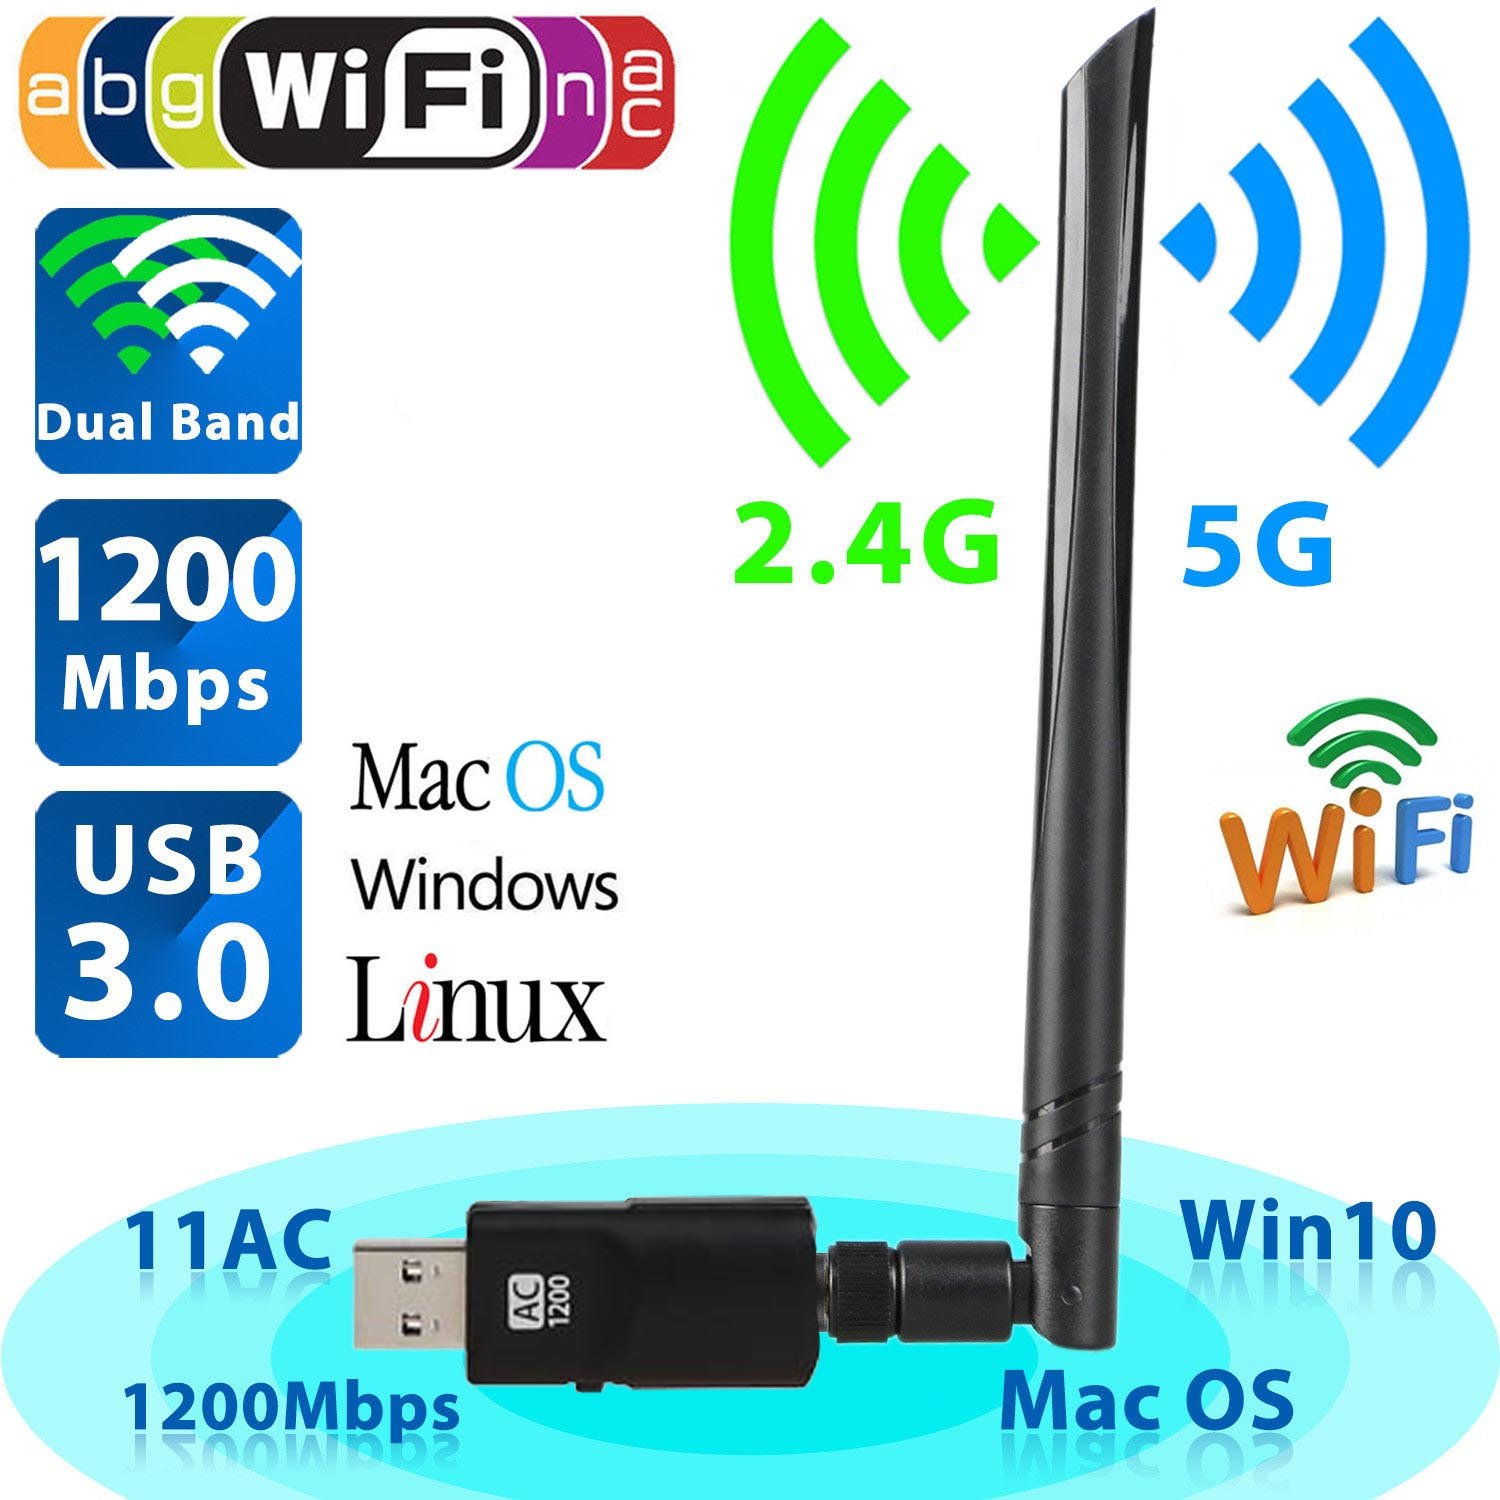 USB Wifi Adapter 1200Mbps, USB 3.0 Wireless Network Wifi Dongle with 5dBi Antenna for PC/Desktop/Laptop/Tablet,Dual Band 2.4G/5G 802.11 ac,Support Windows 10/8/8.1/7/Vista/XP/2000, Mac OS 10.4-10.13.